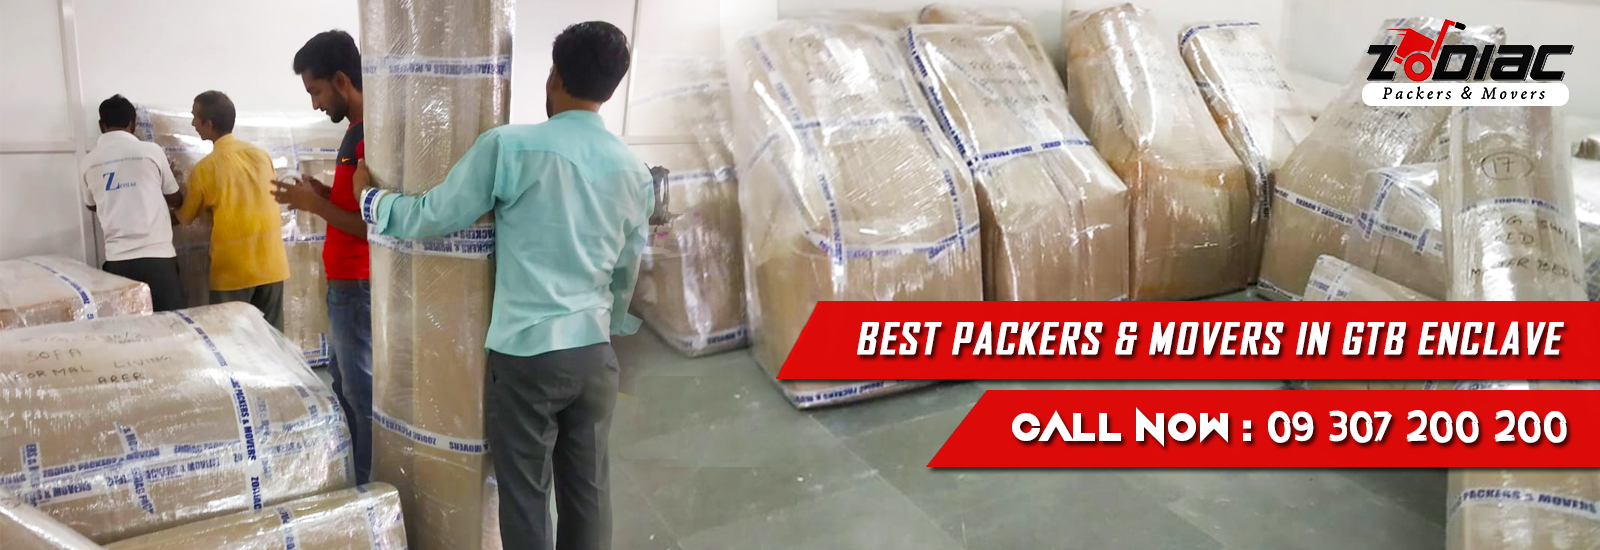 Packers and Movers in GTB Enclave